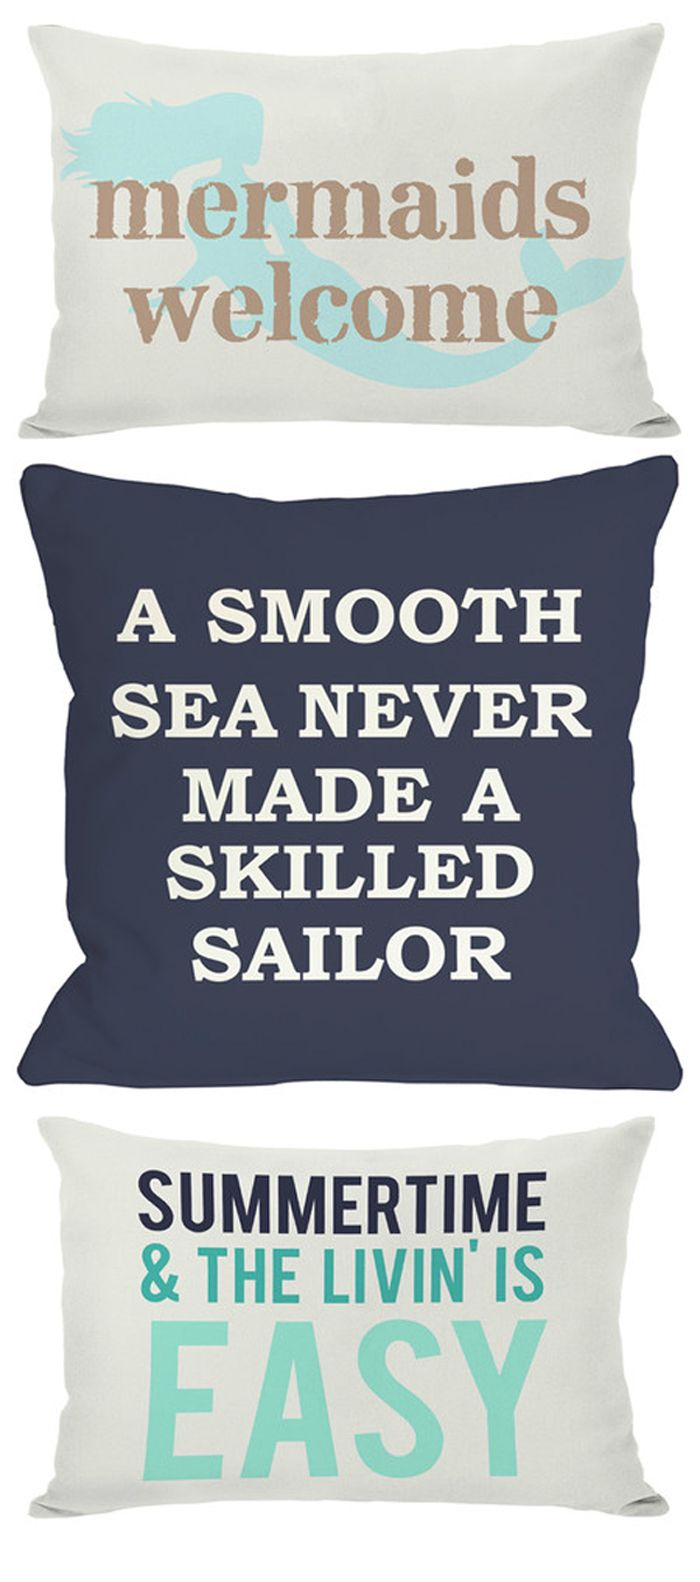 Mermaids Welcome | A Smooth Sea Never Made A Skilled Sailor | Summertime and the Livin' is Easy | Pillows